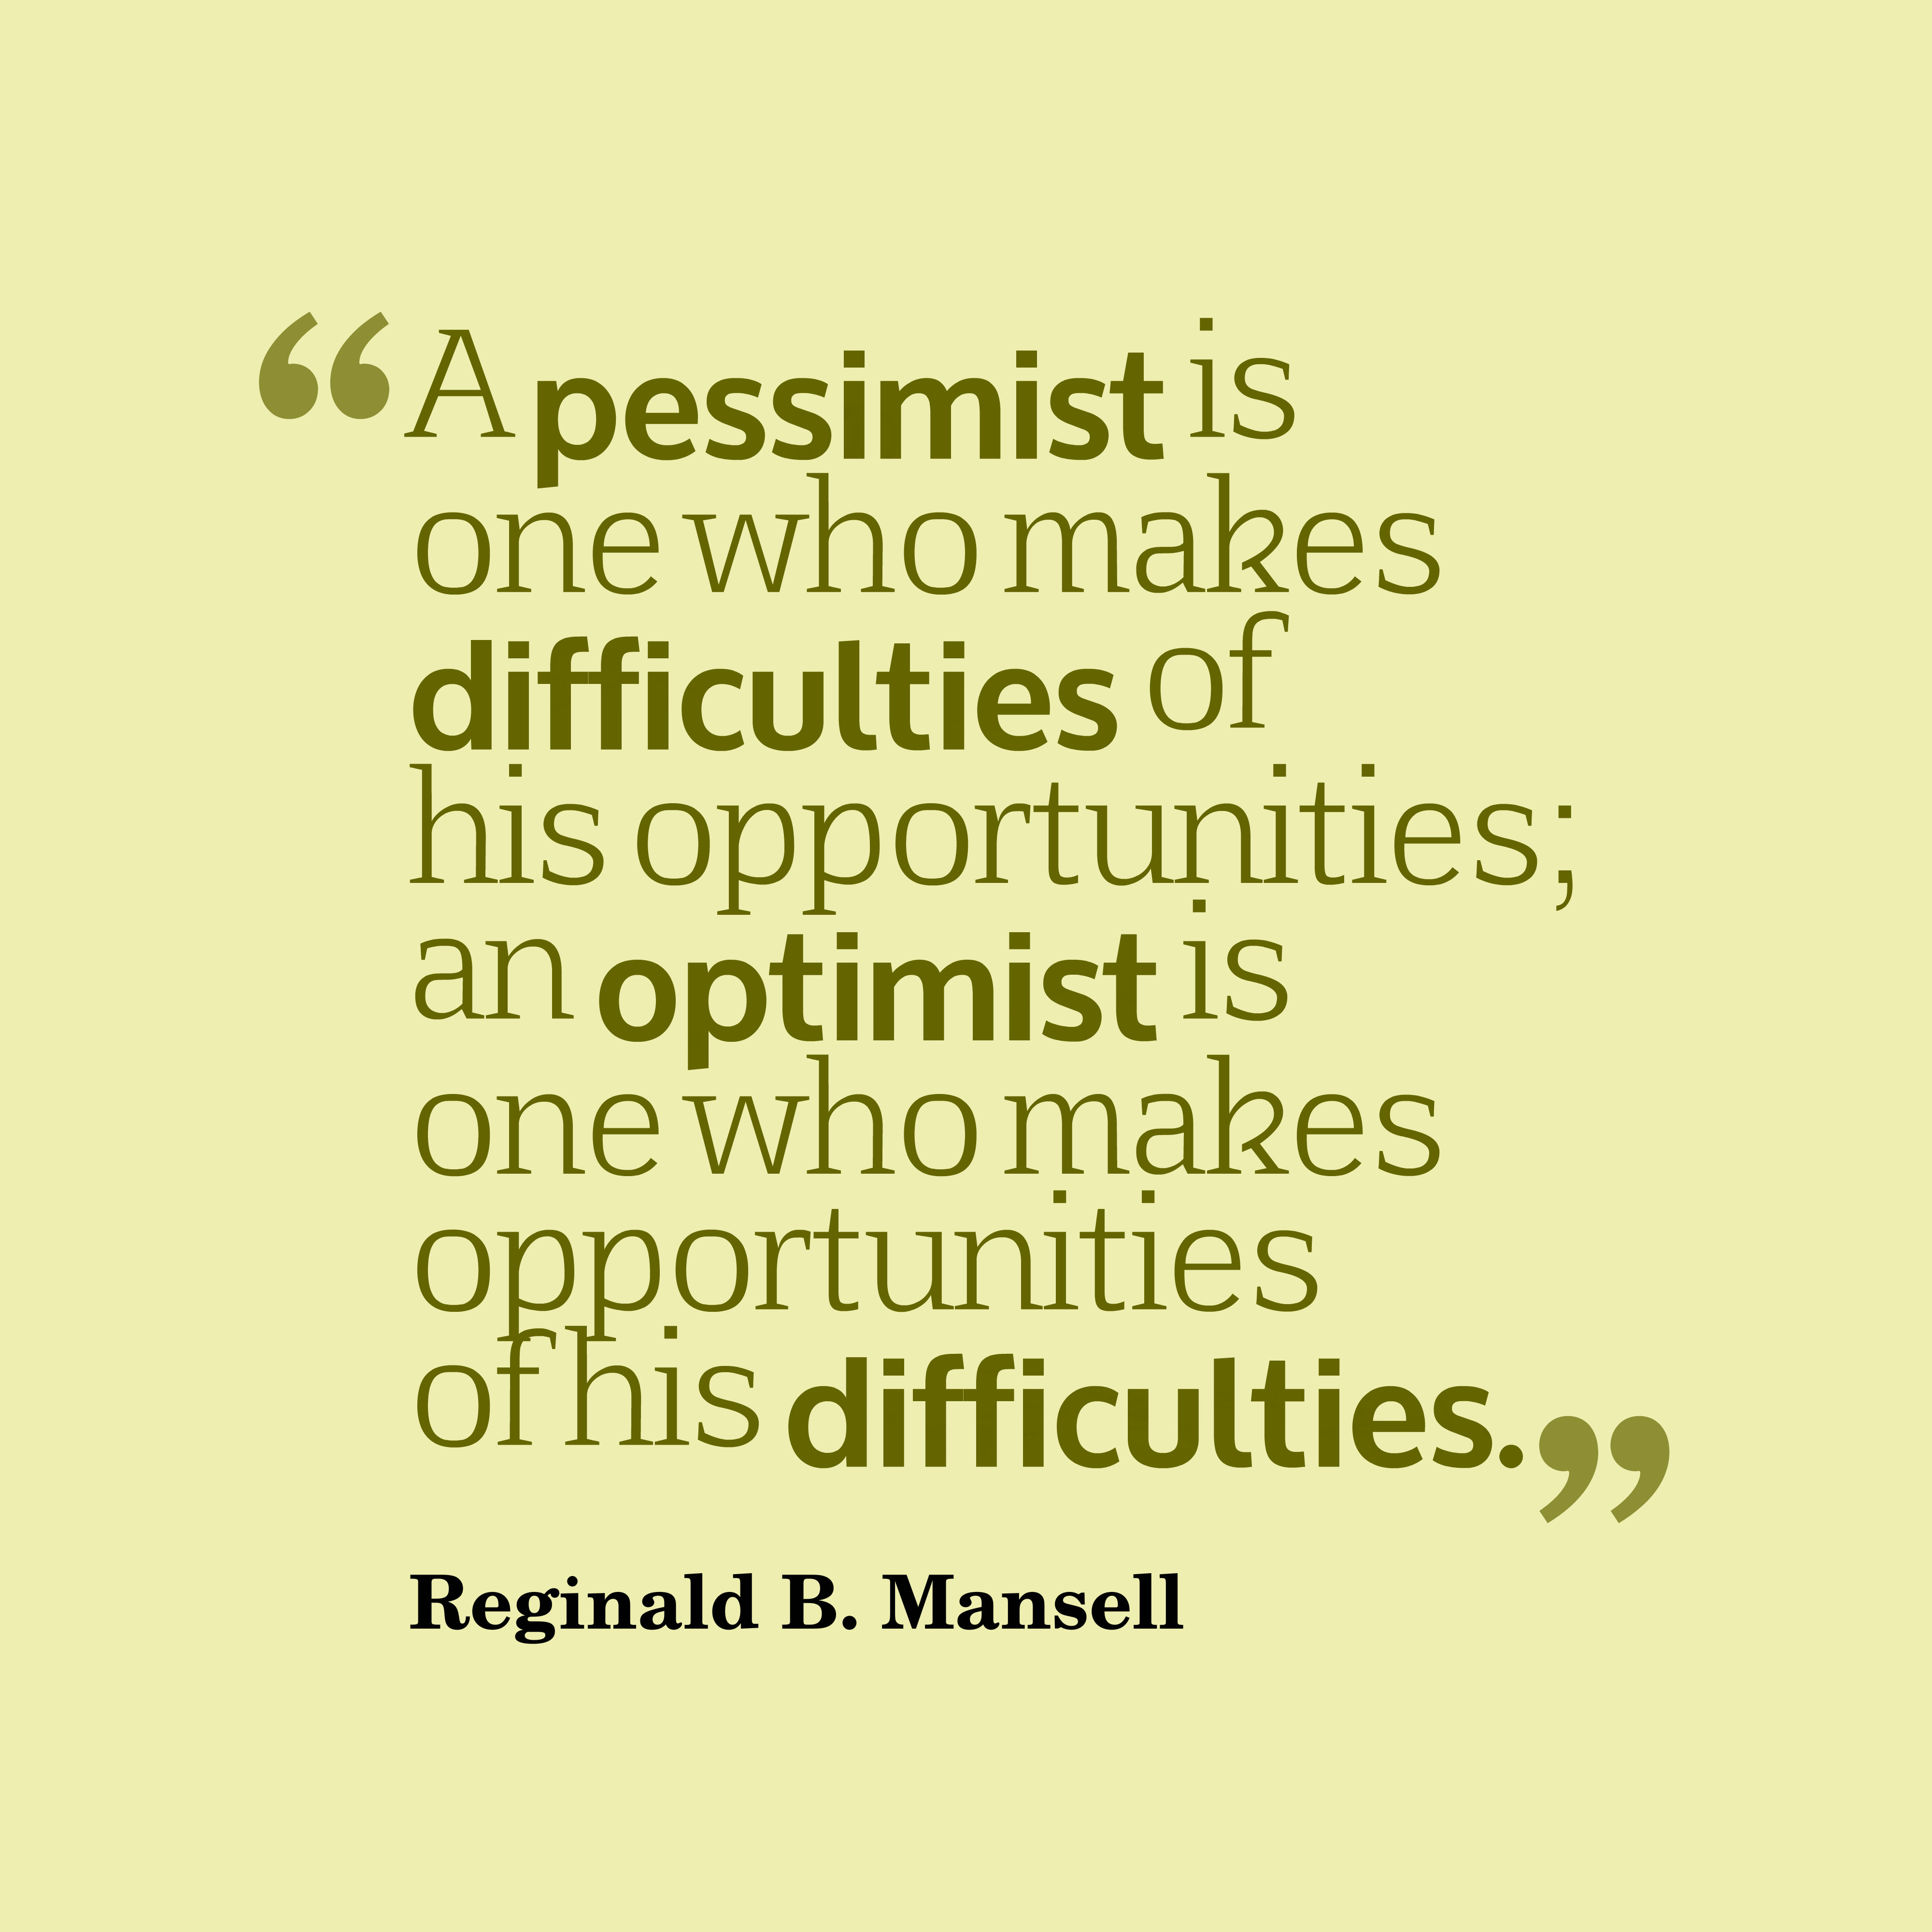 Quotes image of A pessimist is one who makes difficulties of his opportunities; an optimist is one who makes opportunities of his difficulties.